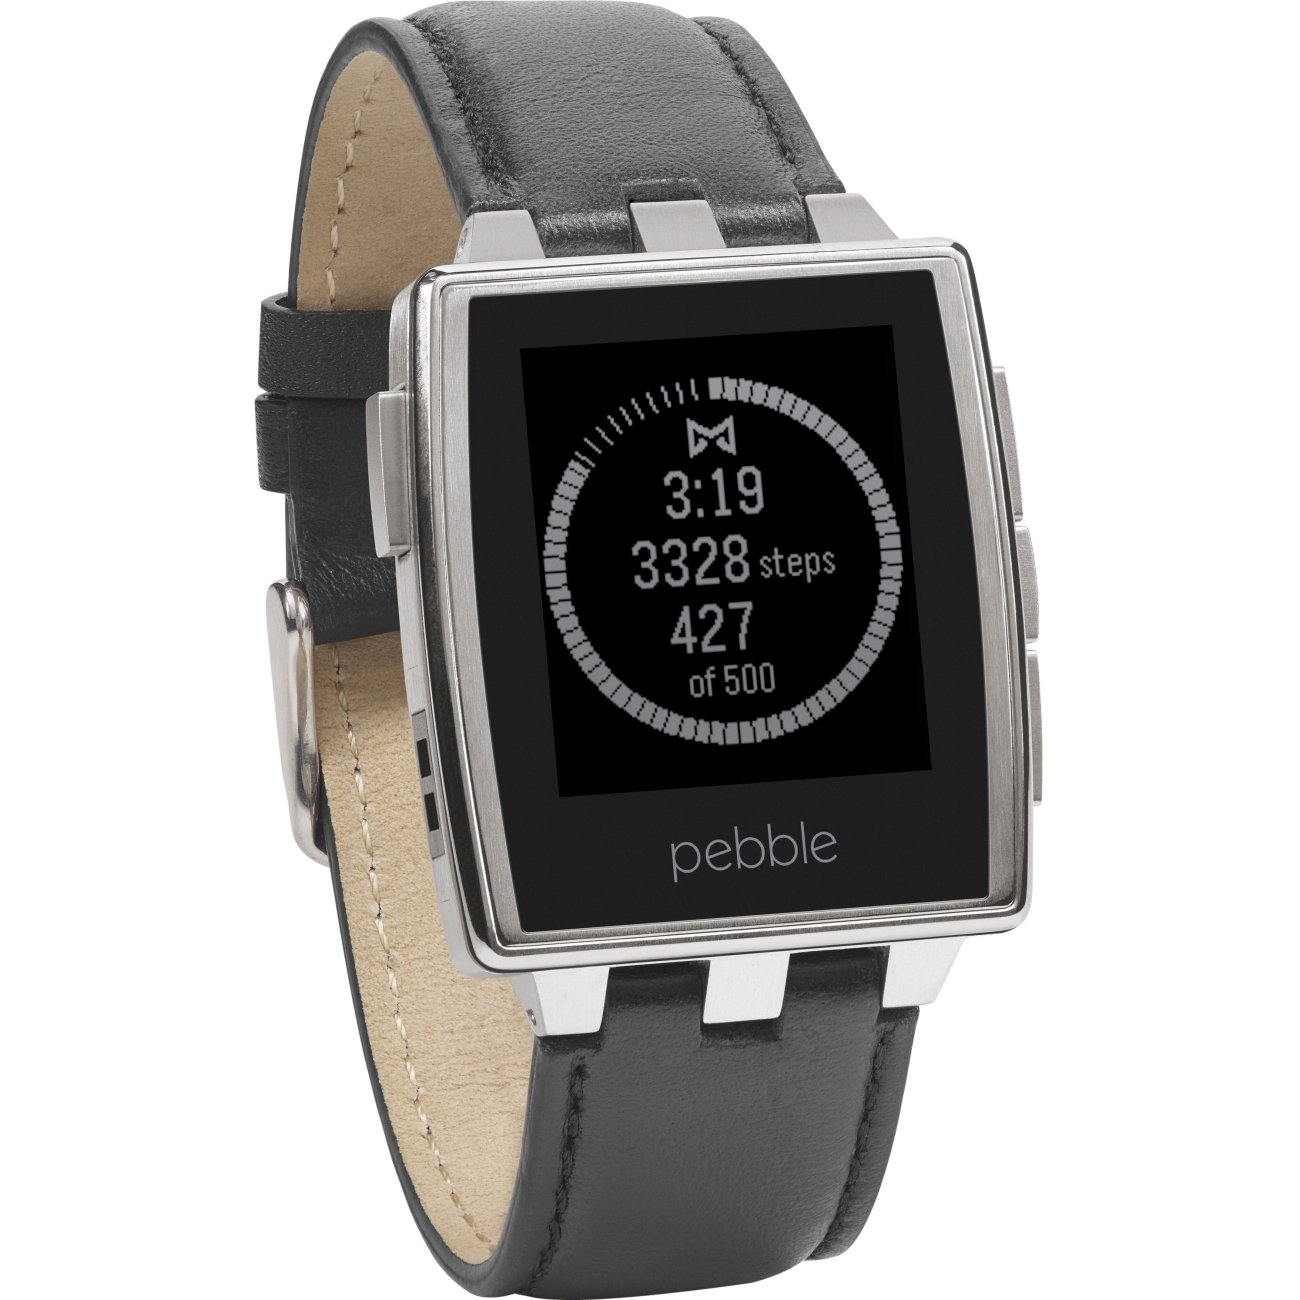 Pebble timeline time steel smartwatch stainless black leather band new 855906004184 ebay for Pebble watches